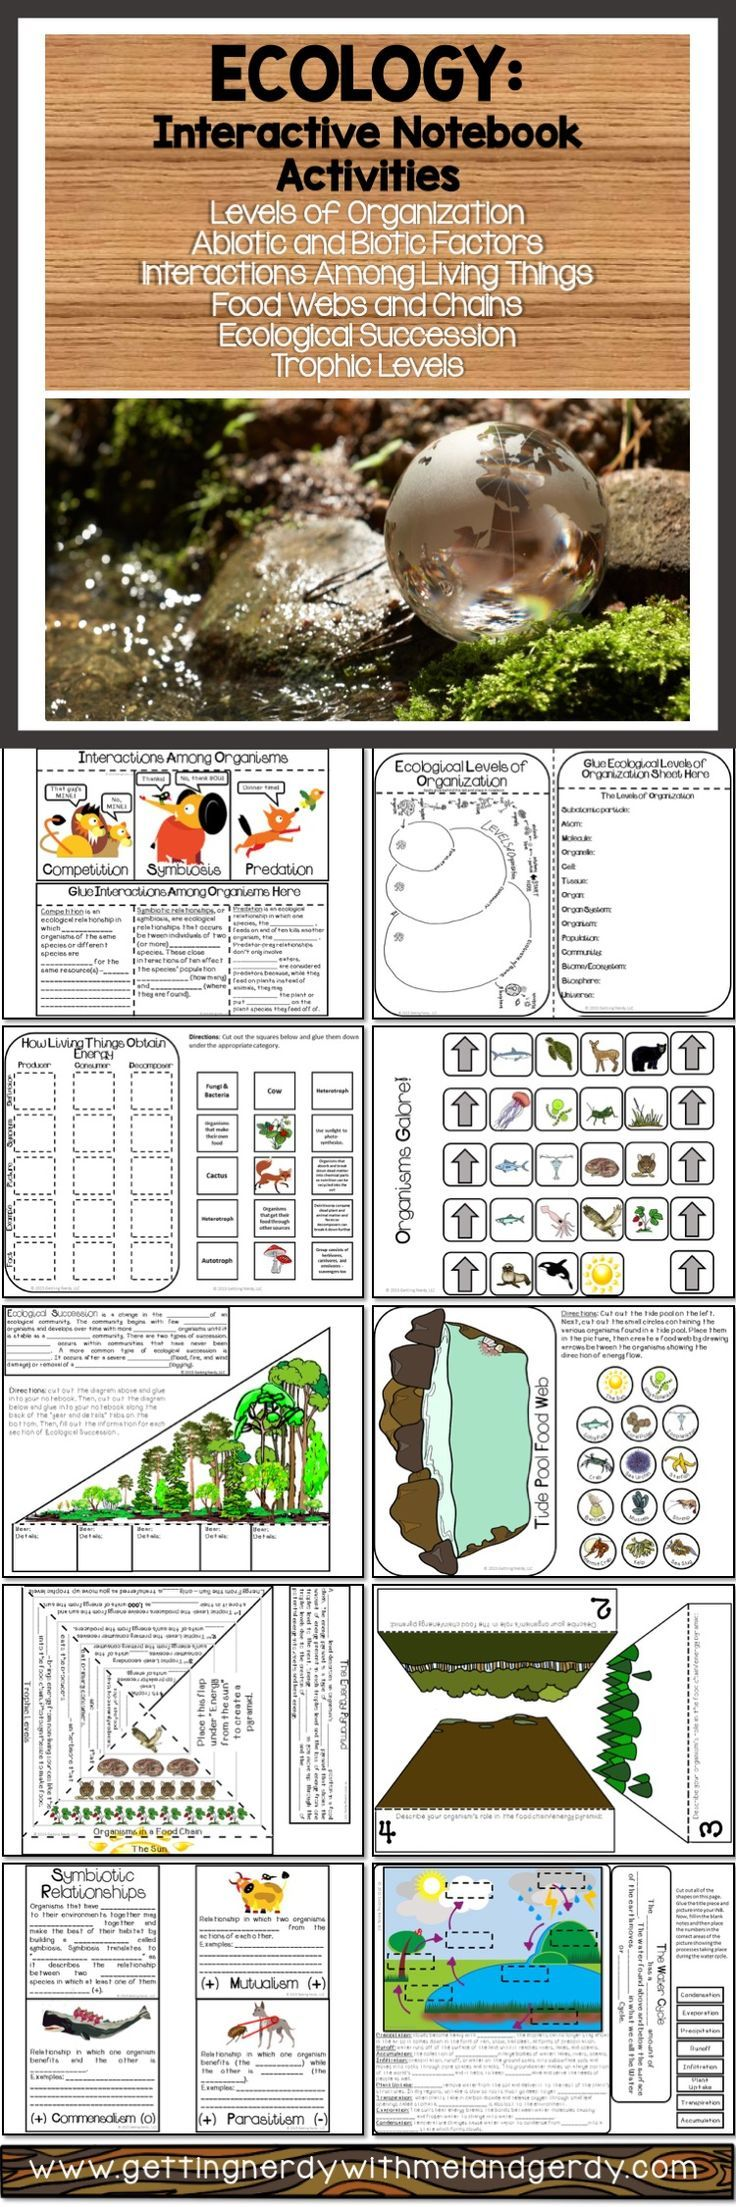 Ecology Issues Project - The Biology Corner